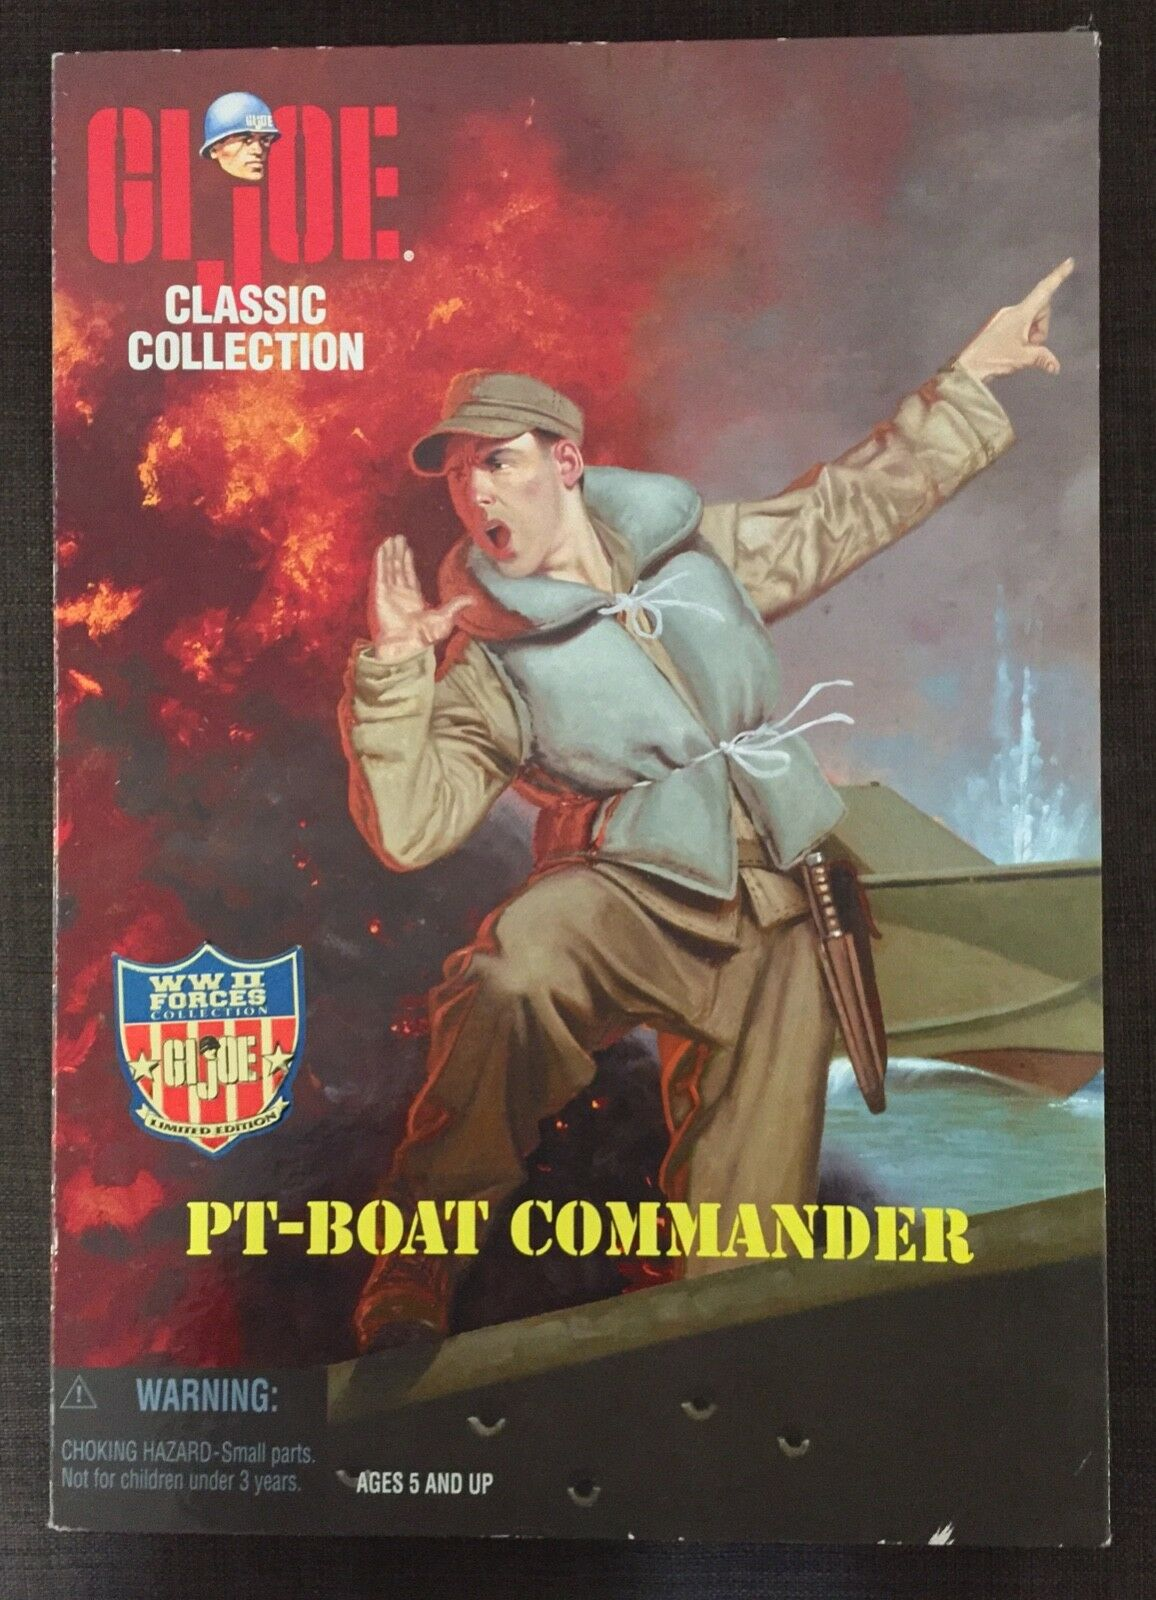 GI Joe Classic Collection PT-BOAT COMMANDER